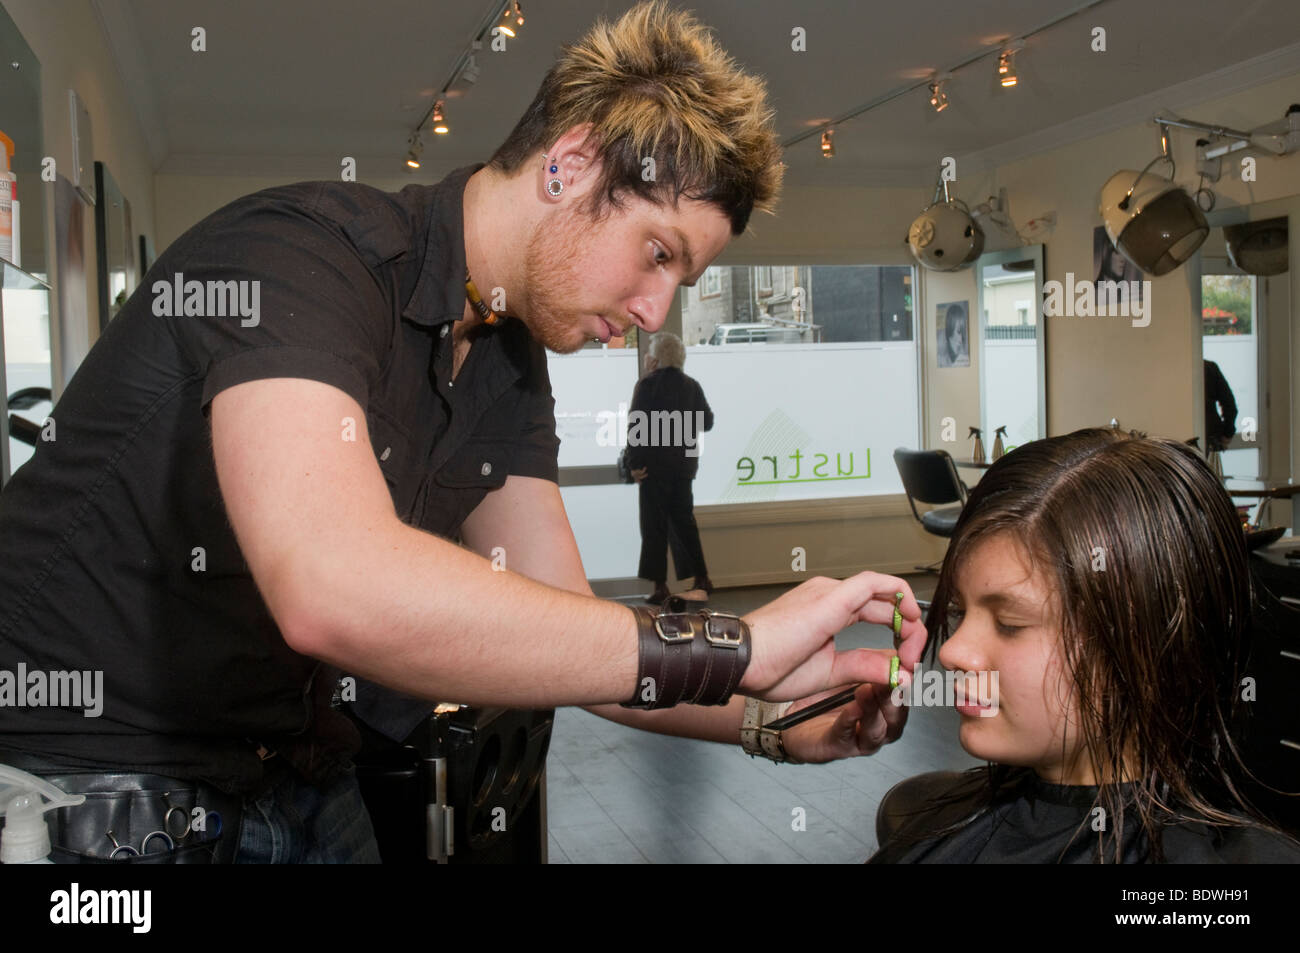 A teenager getting her hair cut by a hairdresser in a hairdressing salon - Stock Image